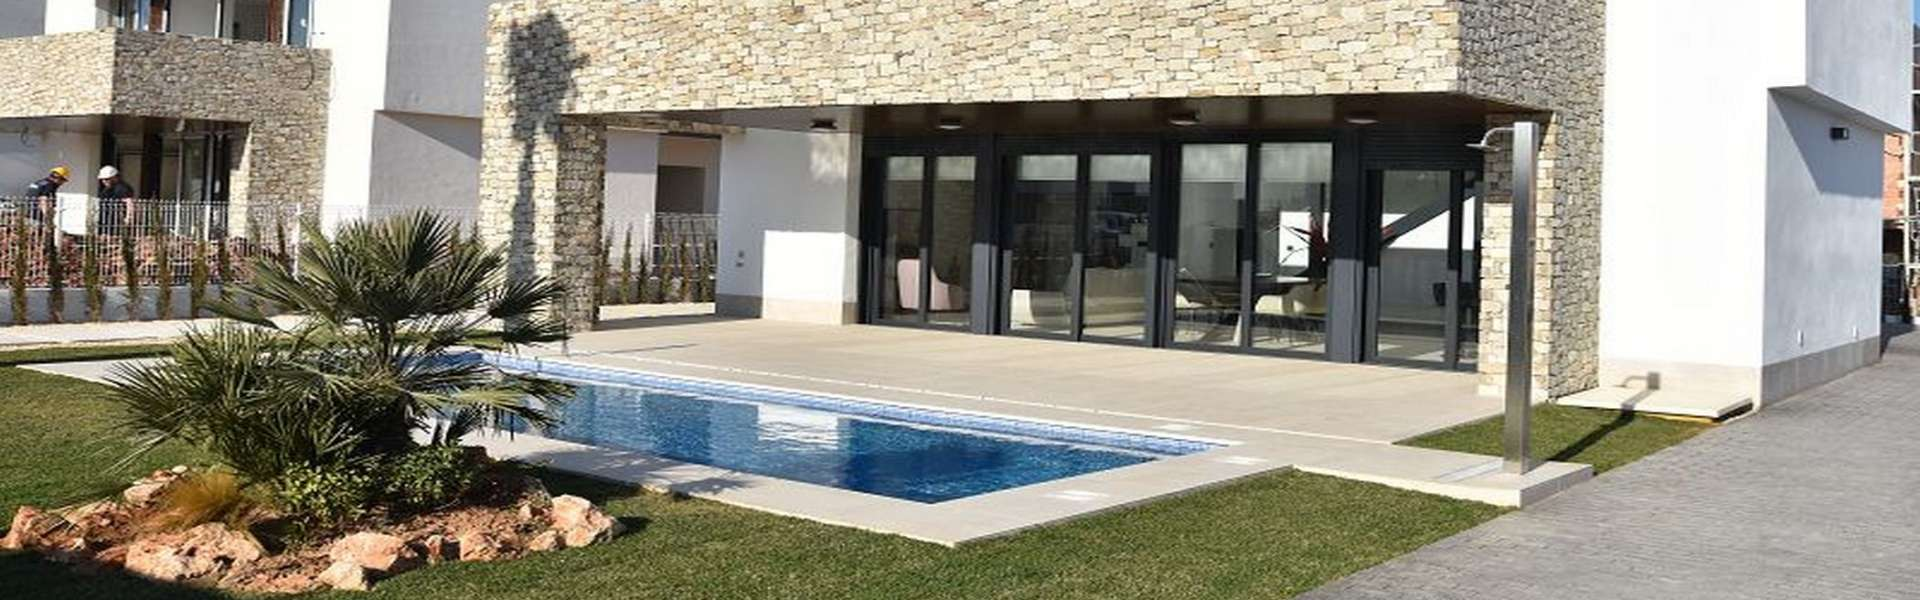 Luxury villas close to the beach - Sa Ràpita